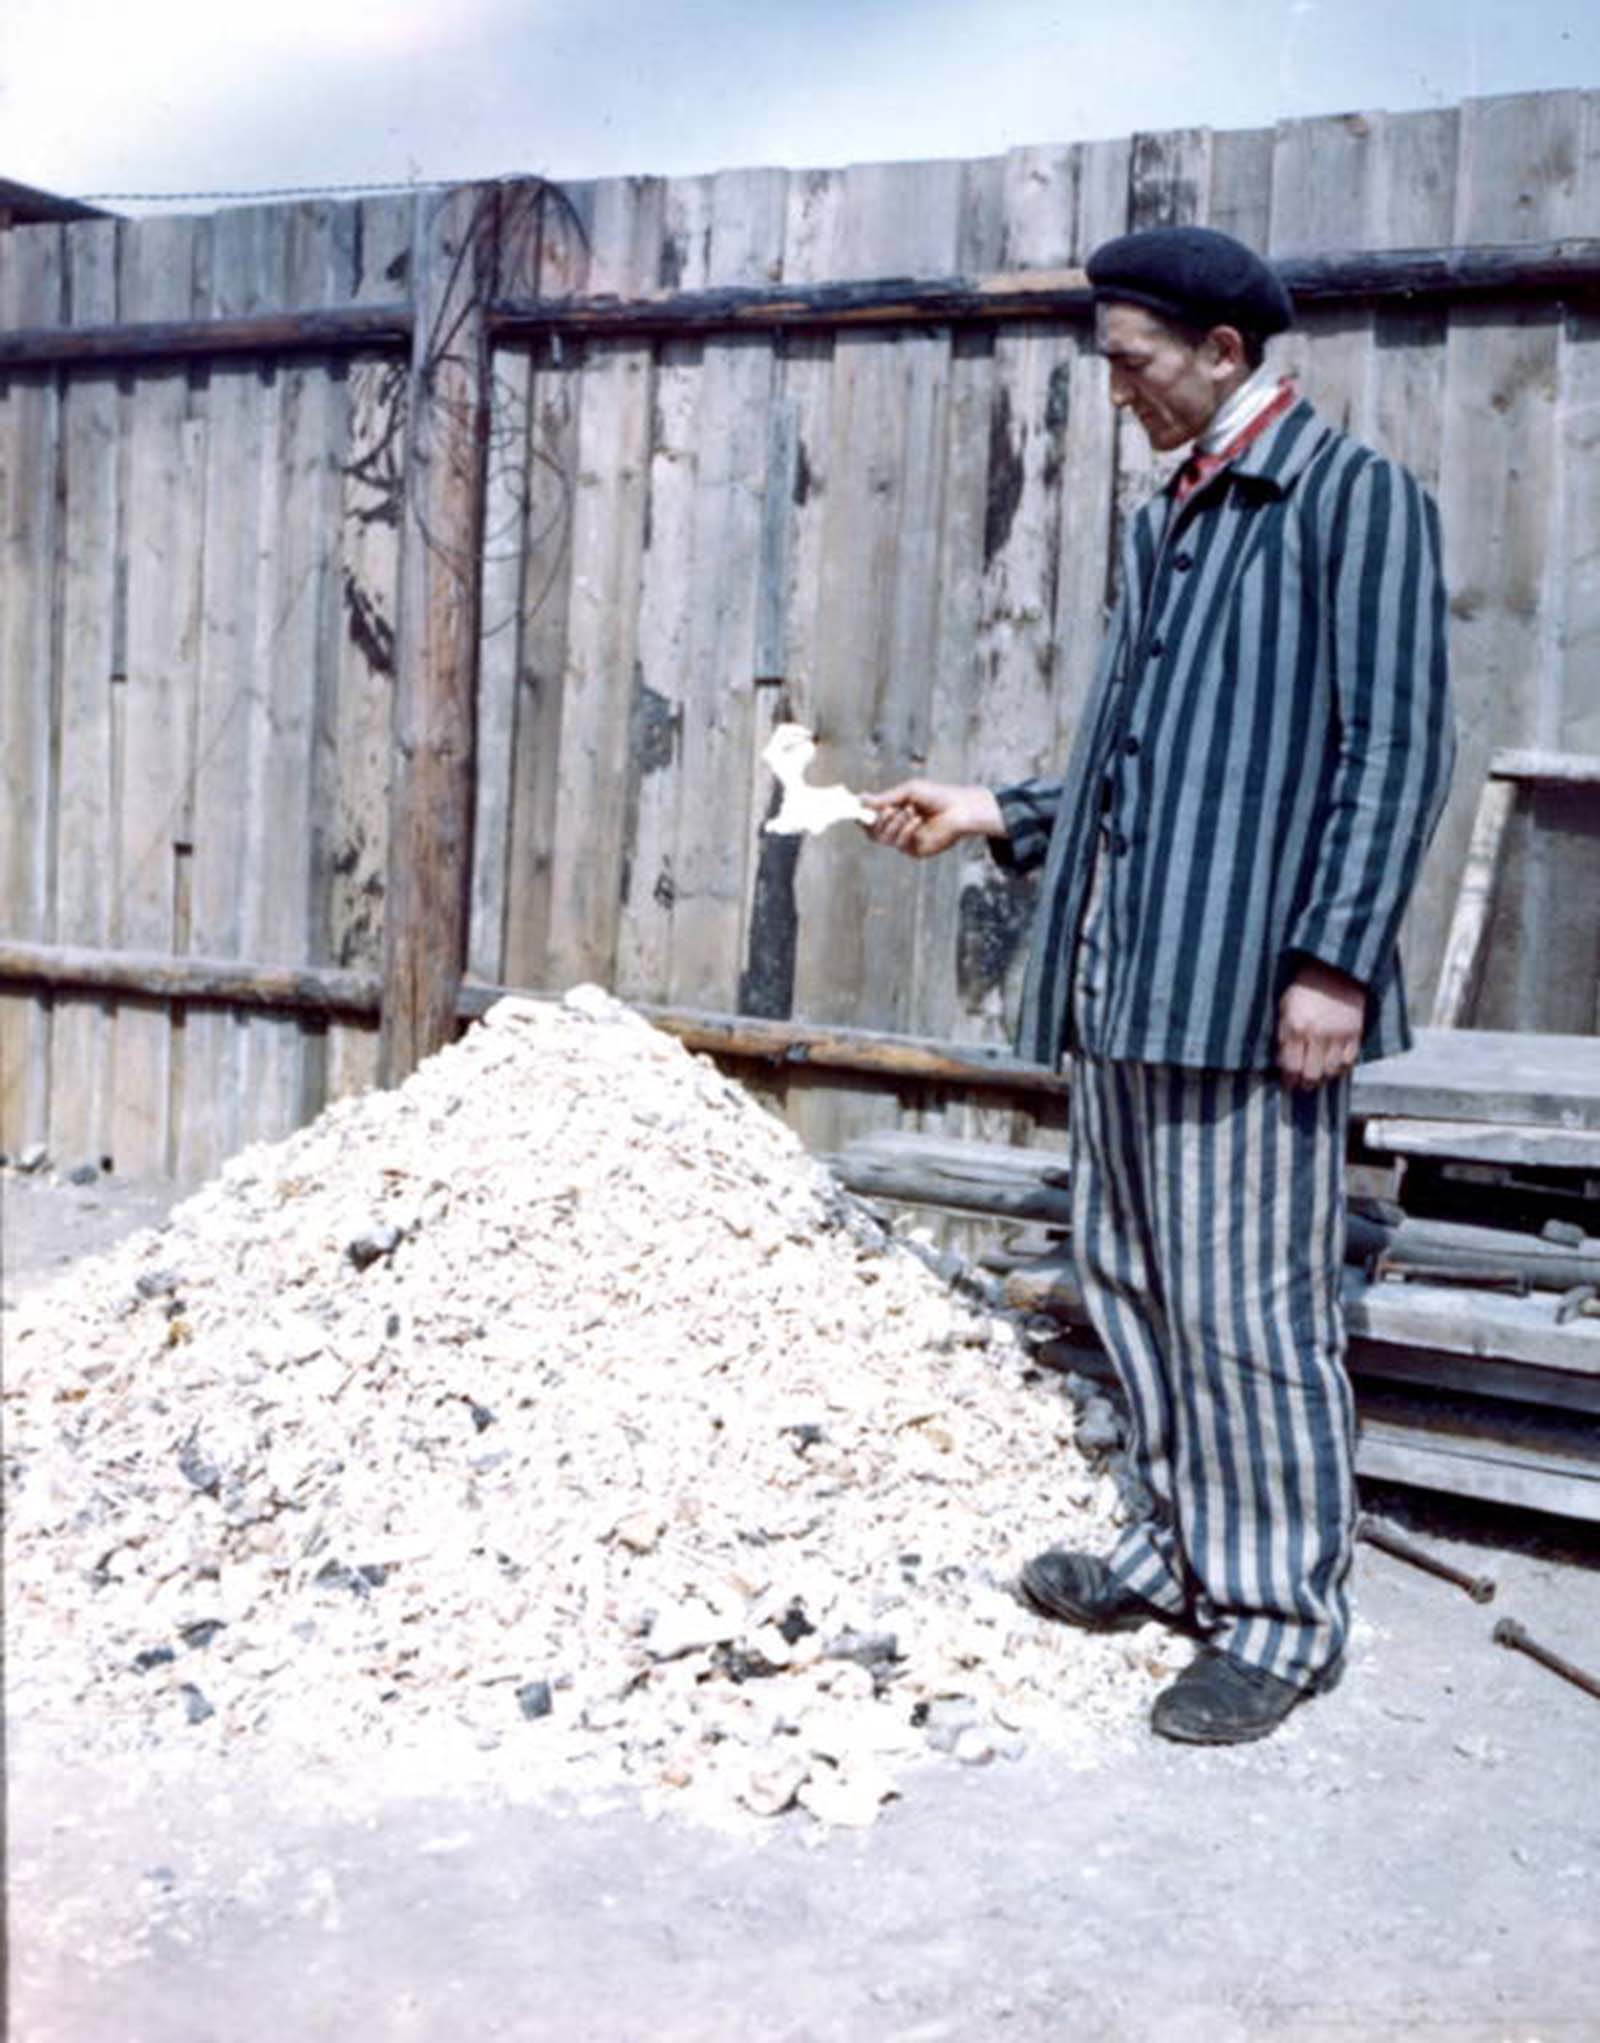 A former prisoner holds a human bone from a large pile of other bones from the Buchenwald concentration camp's crematory. 1945.